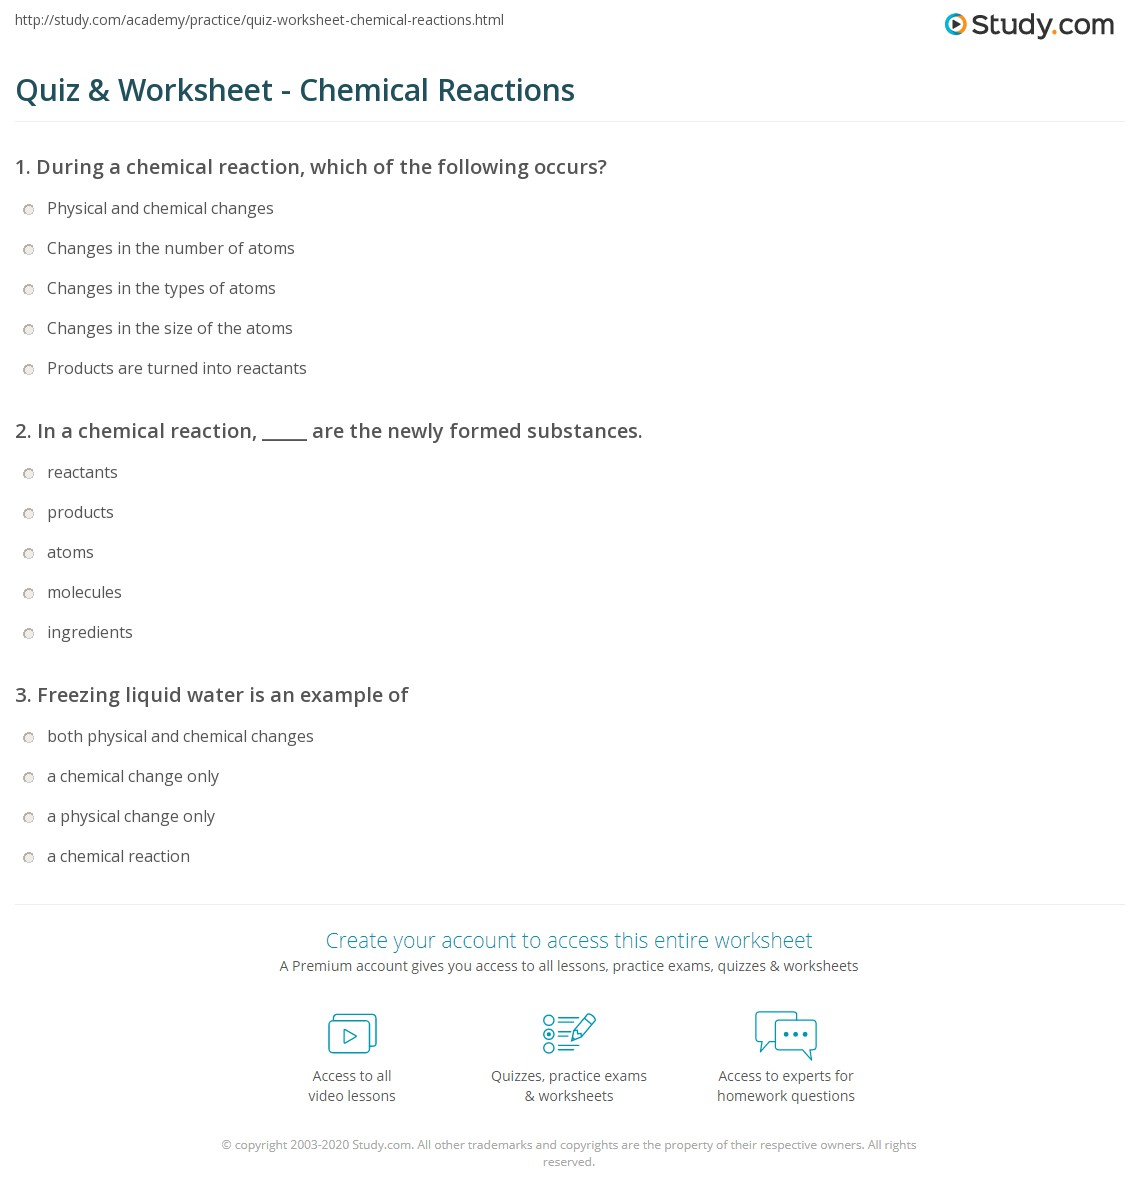 Quiz & Worksheet - Chemical Reactions | Study.com